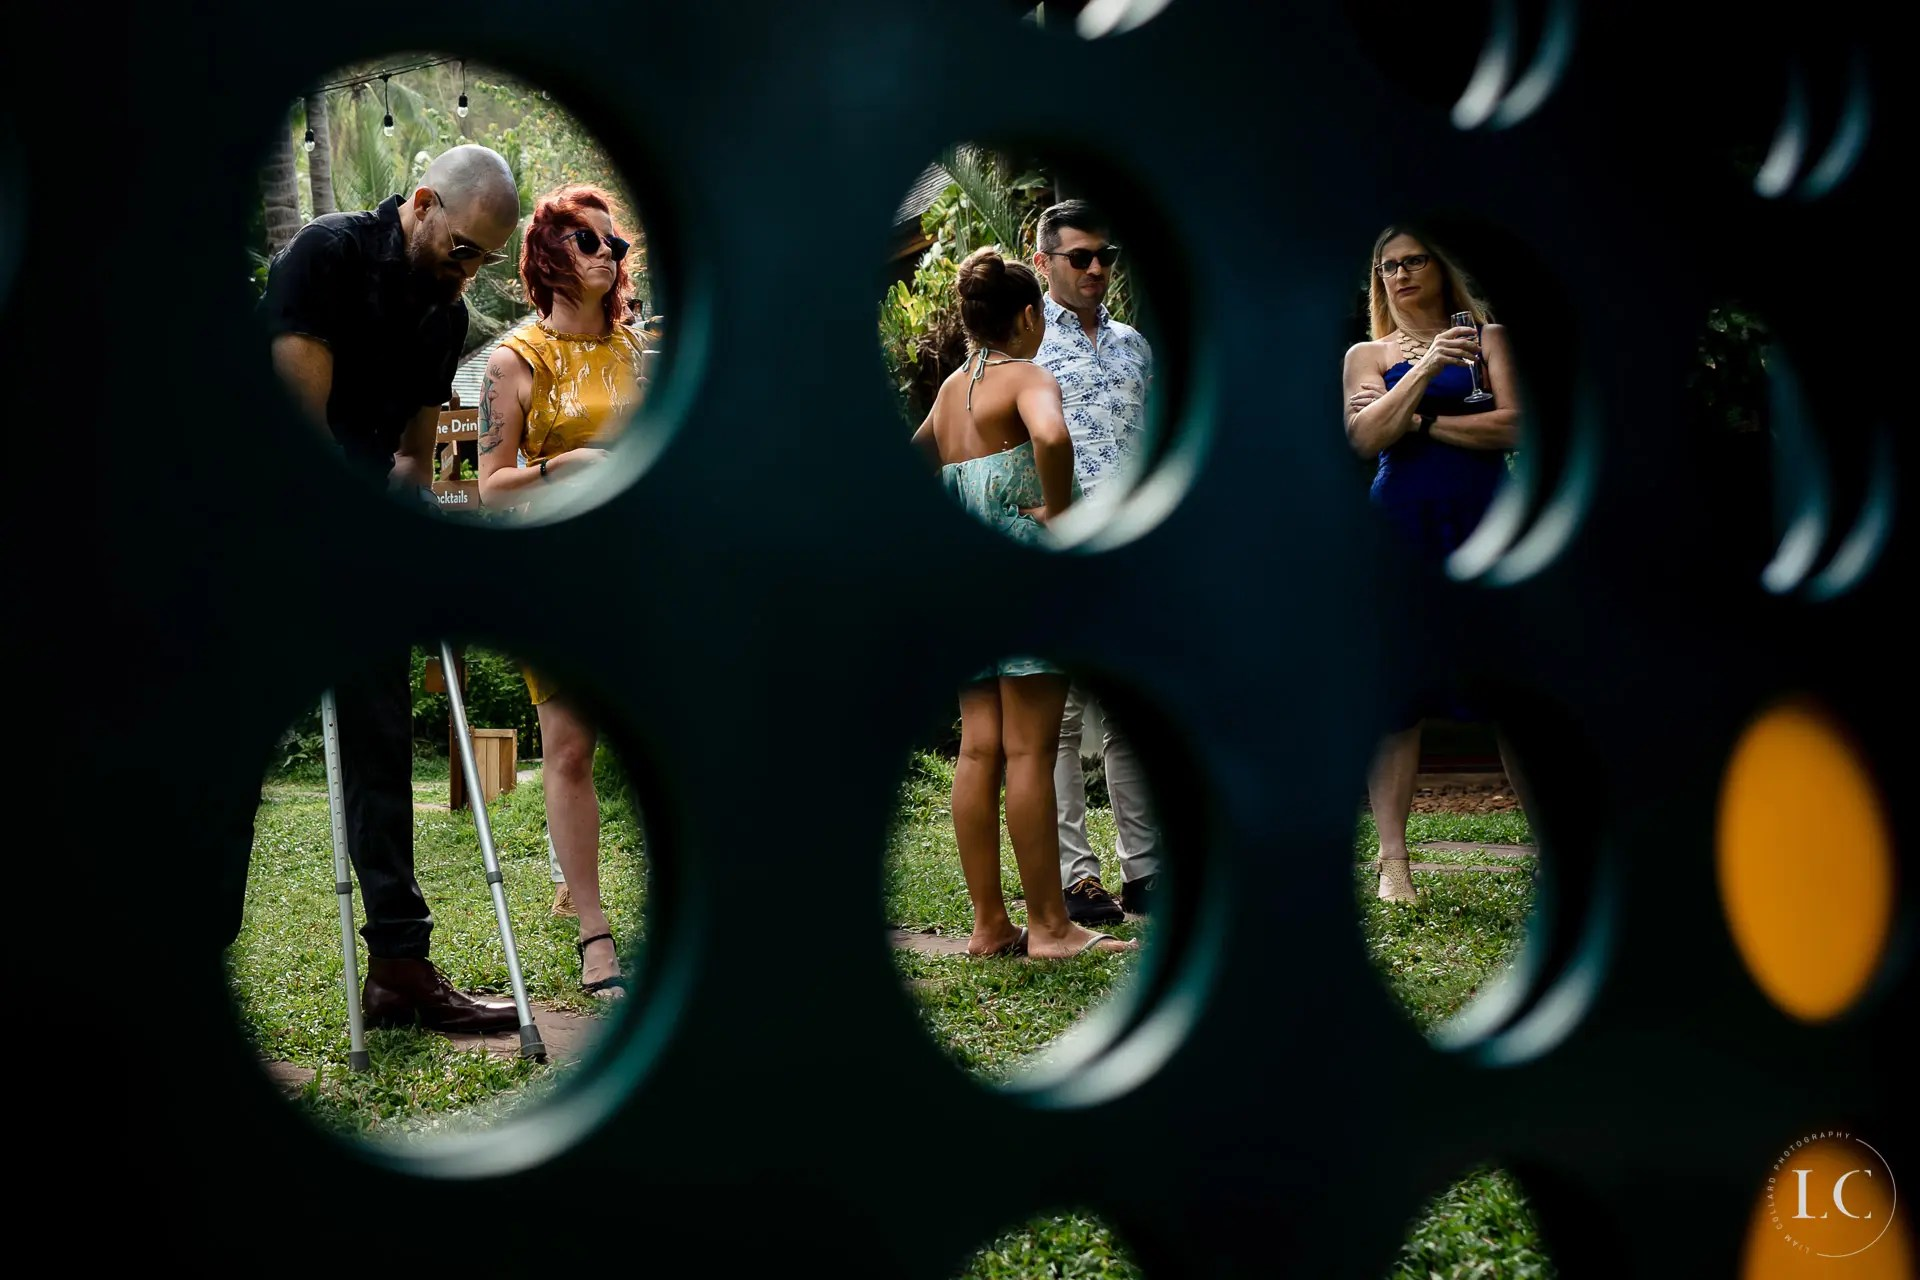 Distorted view of bridal party